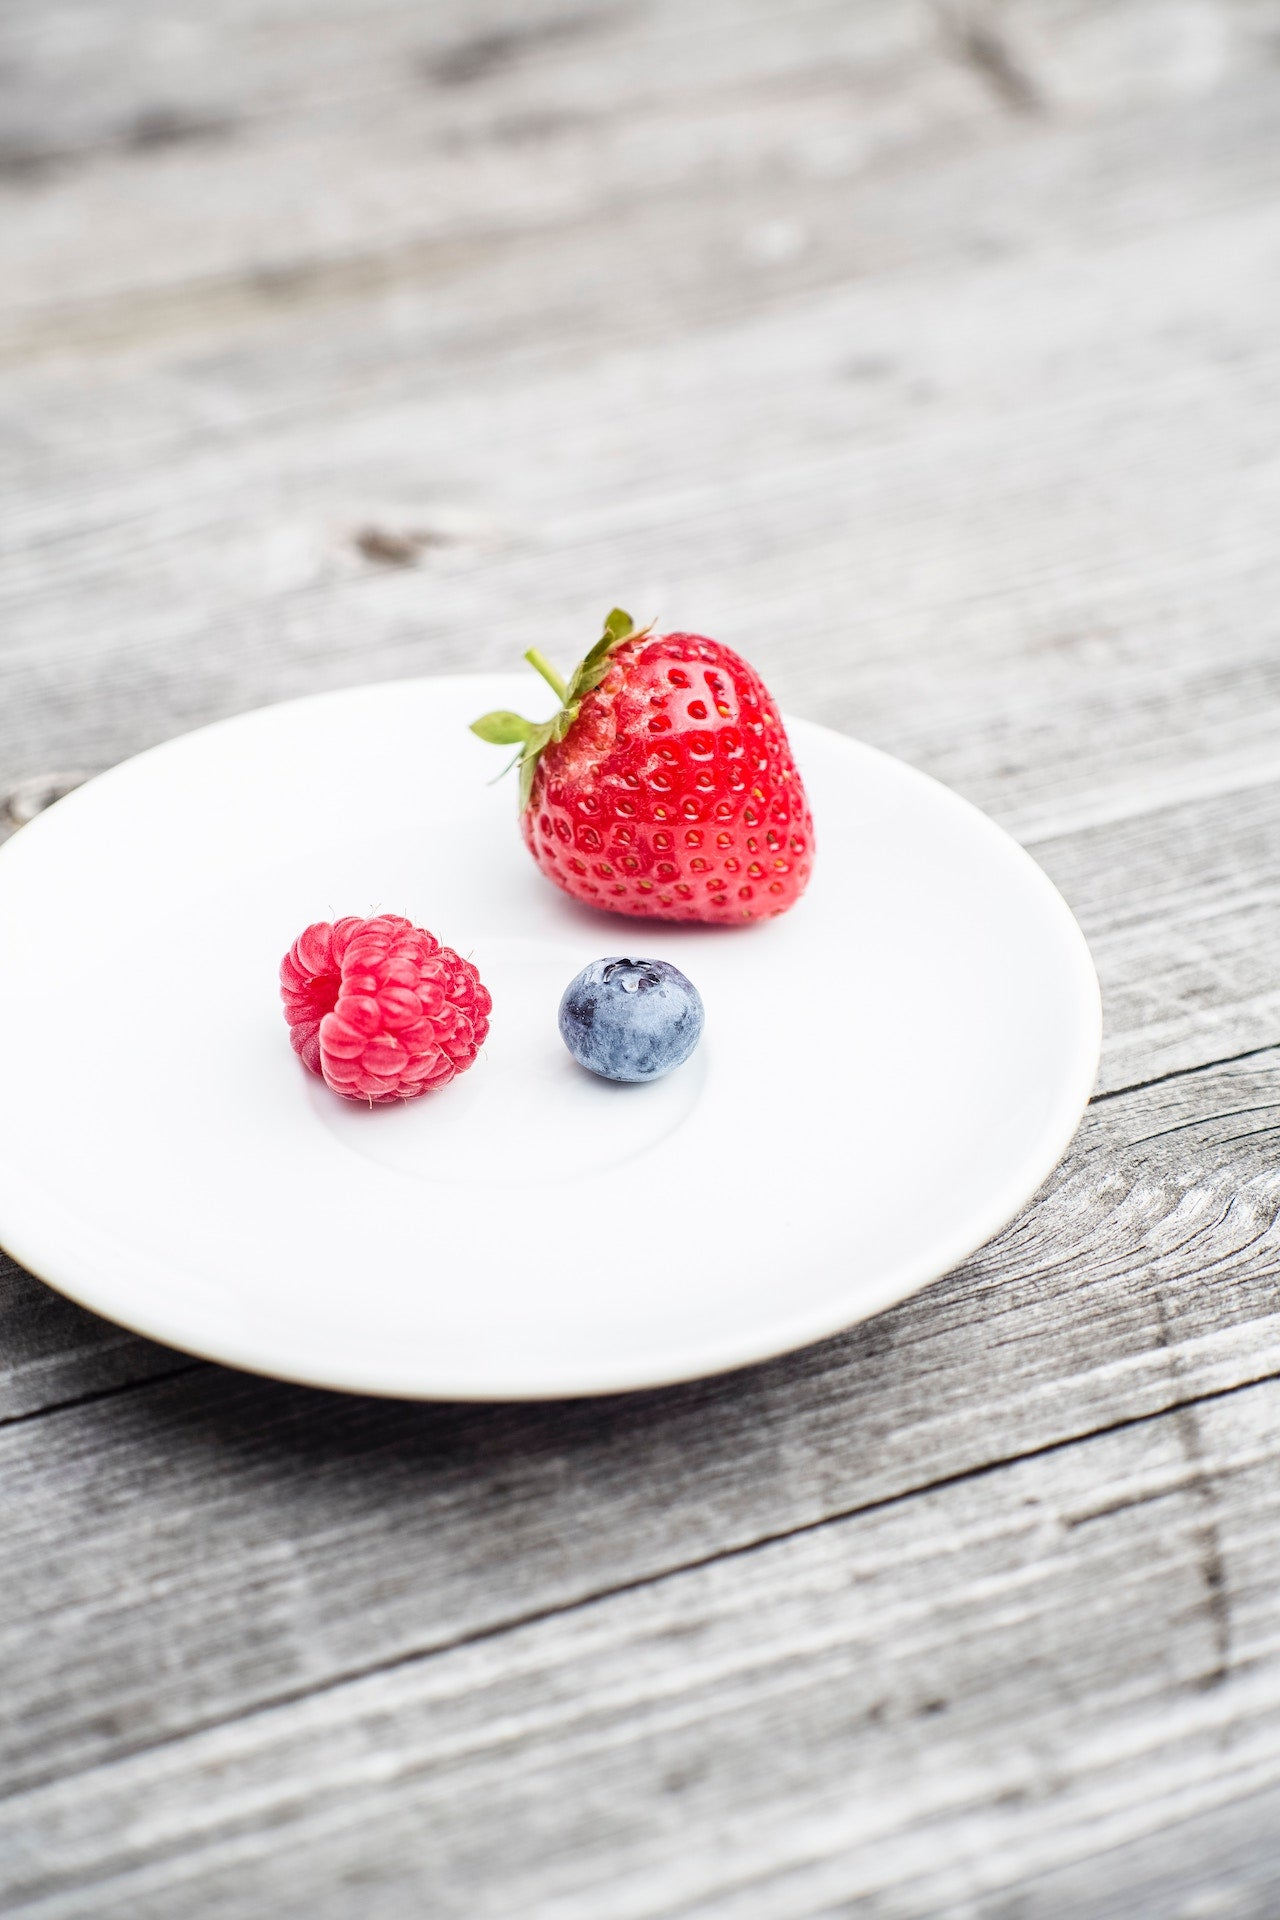 Berries in plate